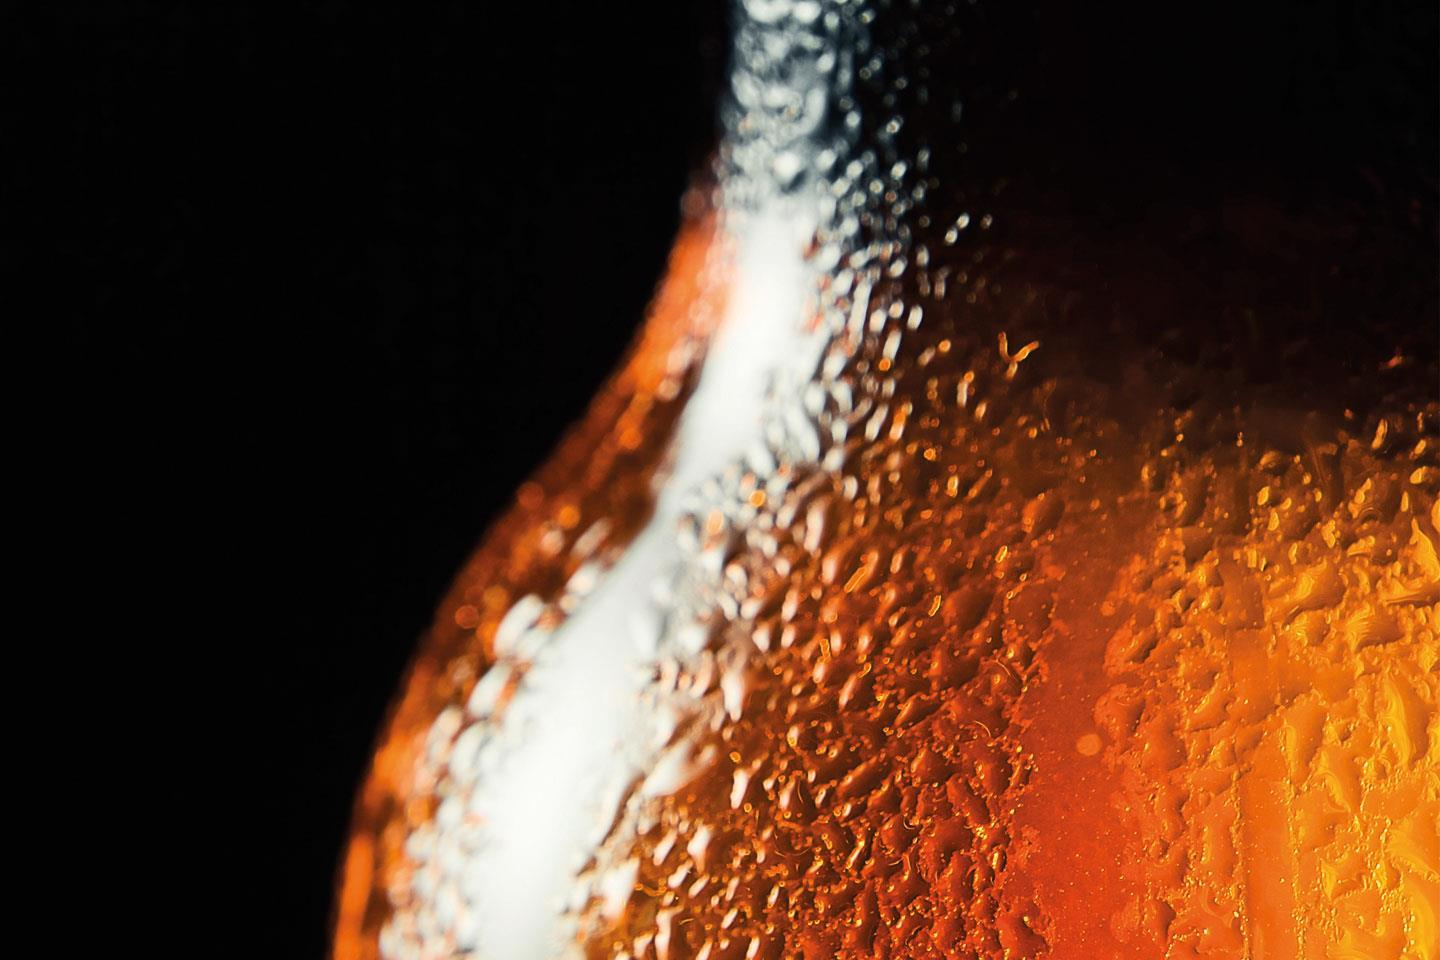 Pentair's IoT solution enables brewers to boost performance | News